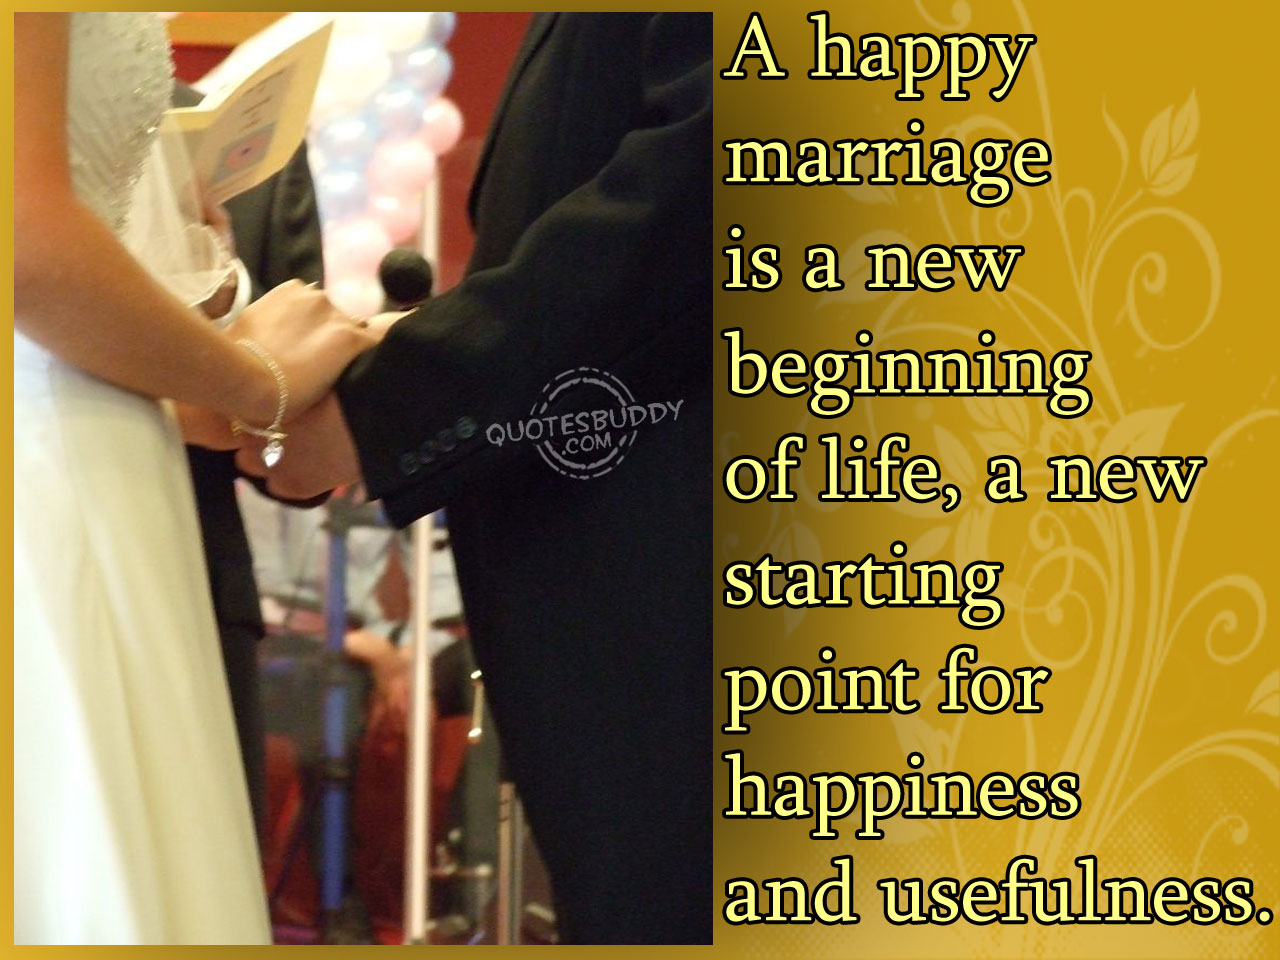 Hindu Quotes On Marriage. QuotesGram